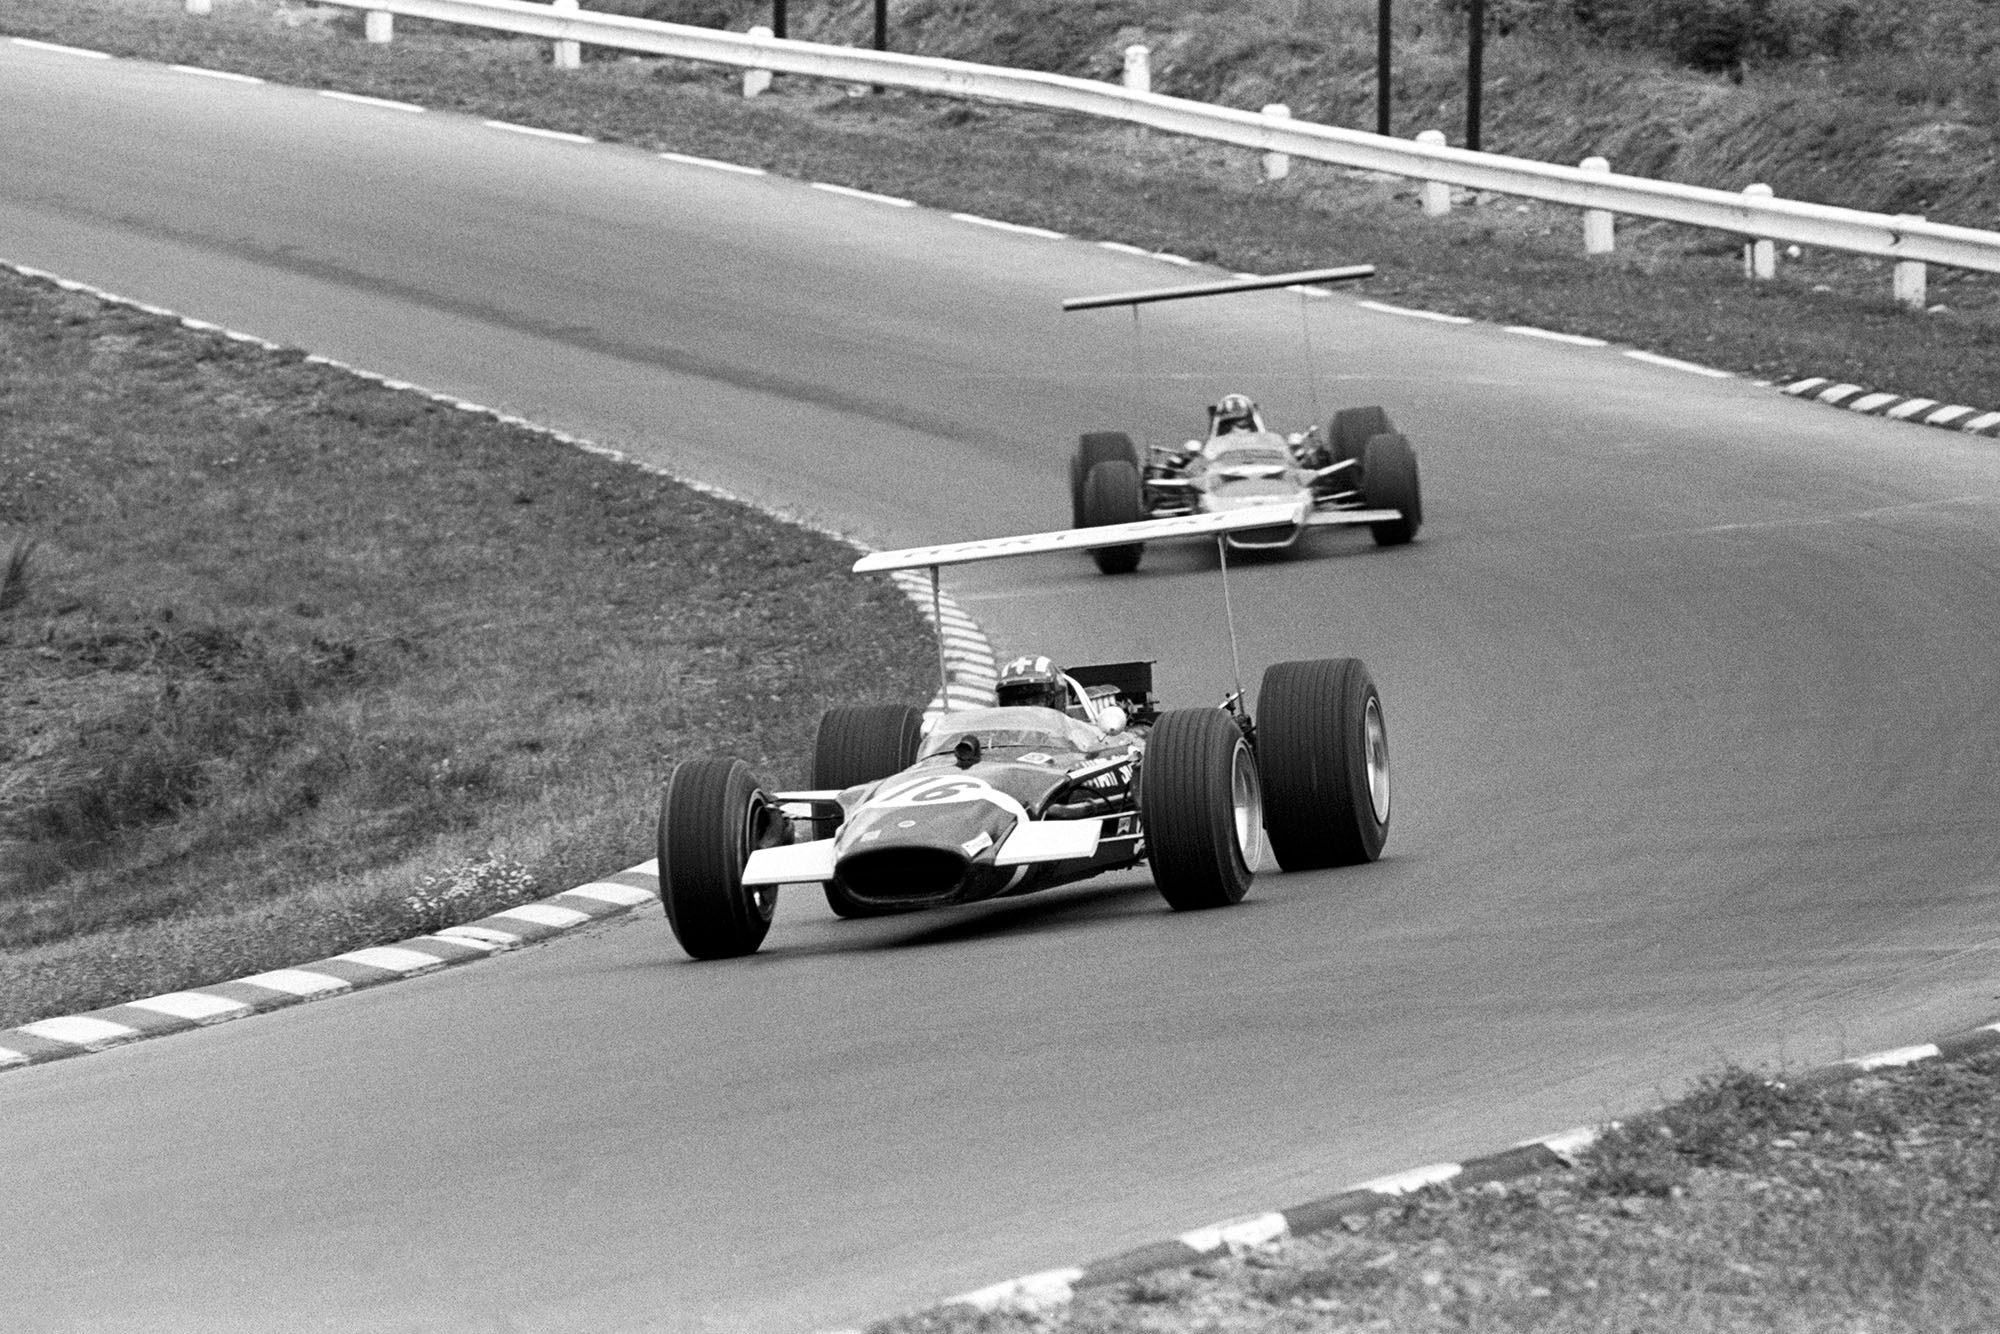 Jo Siffert in his Rob Walker Lotus at the 1968 United States Grand Prix.